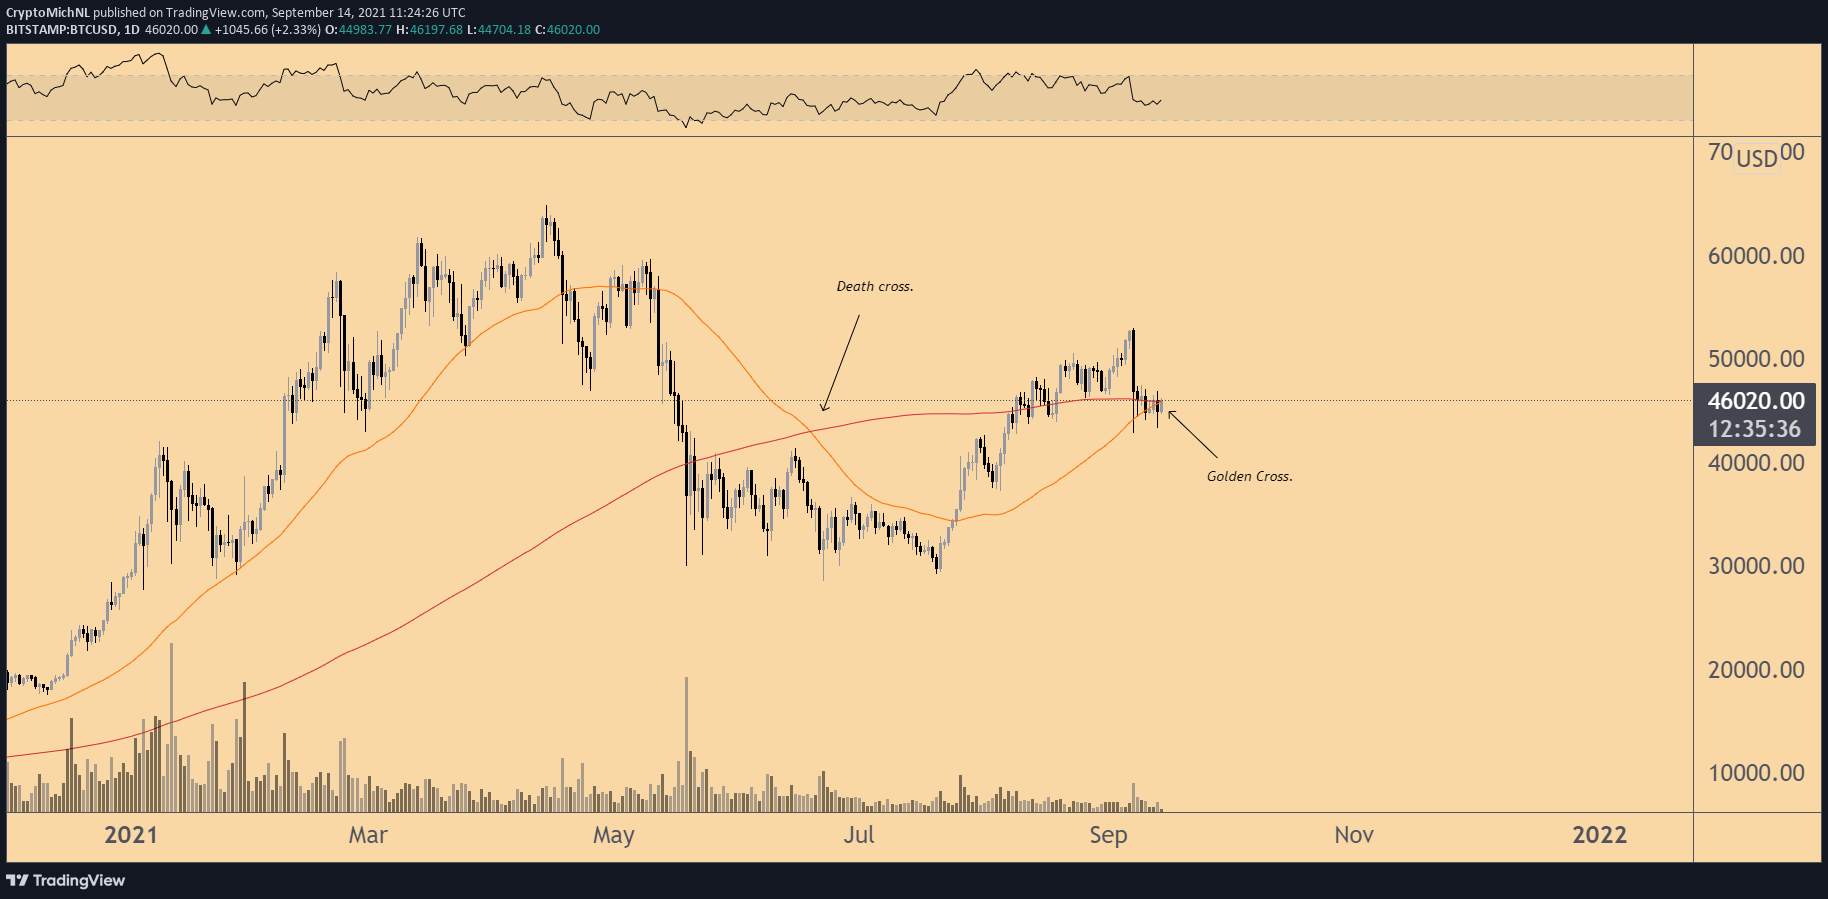 Bitcoin technicals: Incoming 'golden cross' presents potential bottom for BTC price